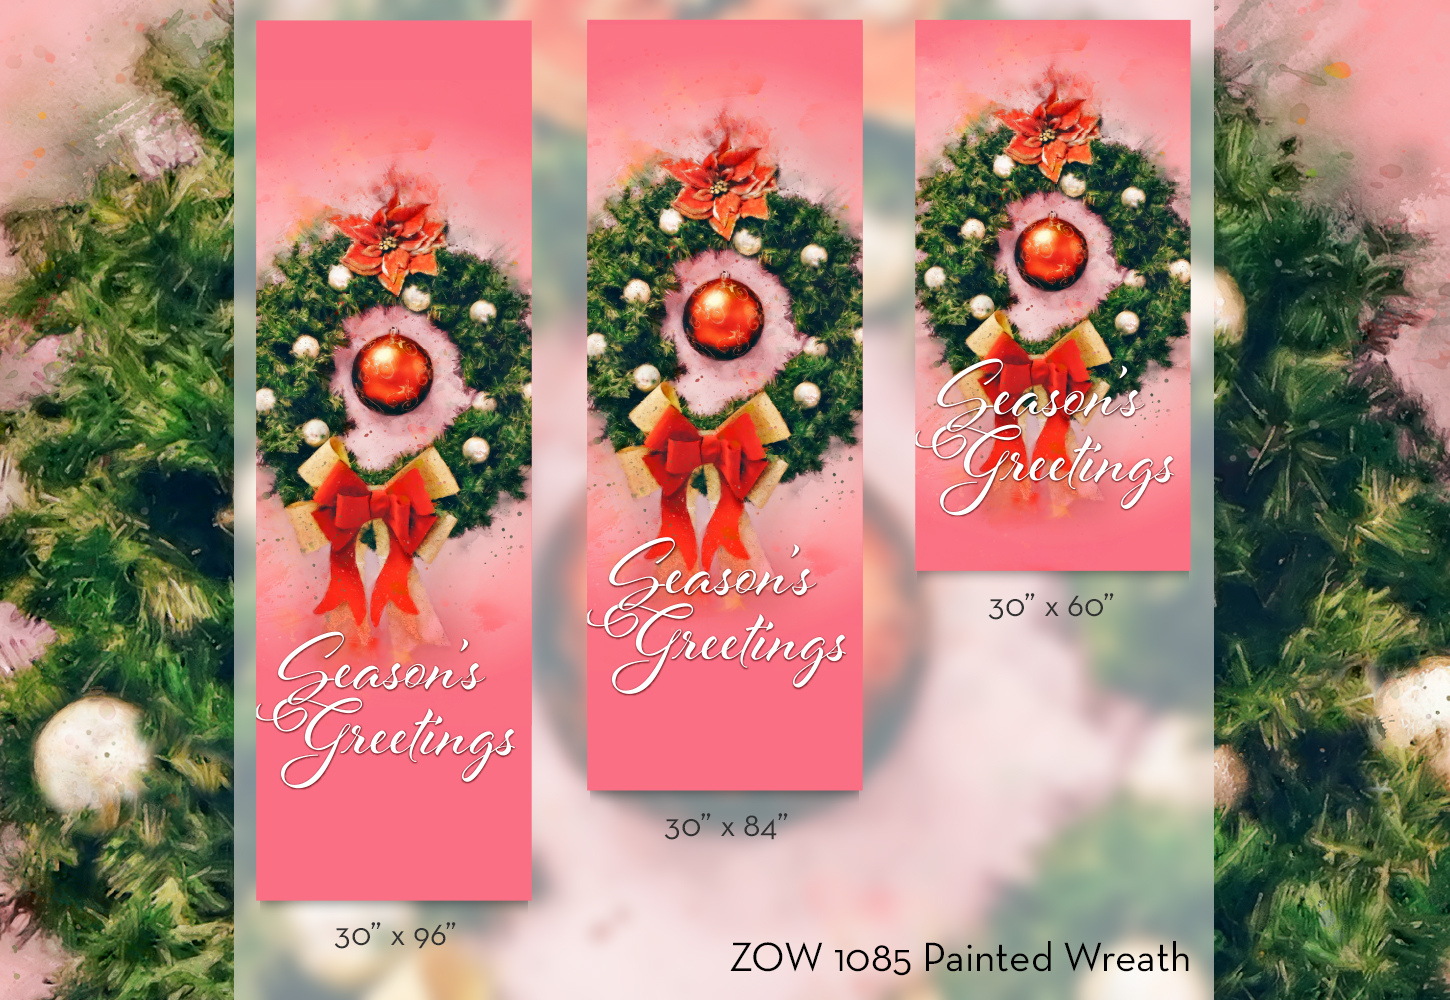 ZOW 1085 Painted Wreath